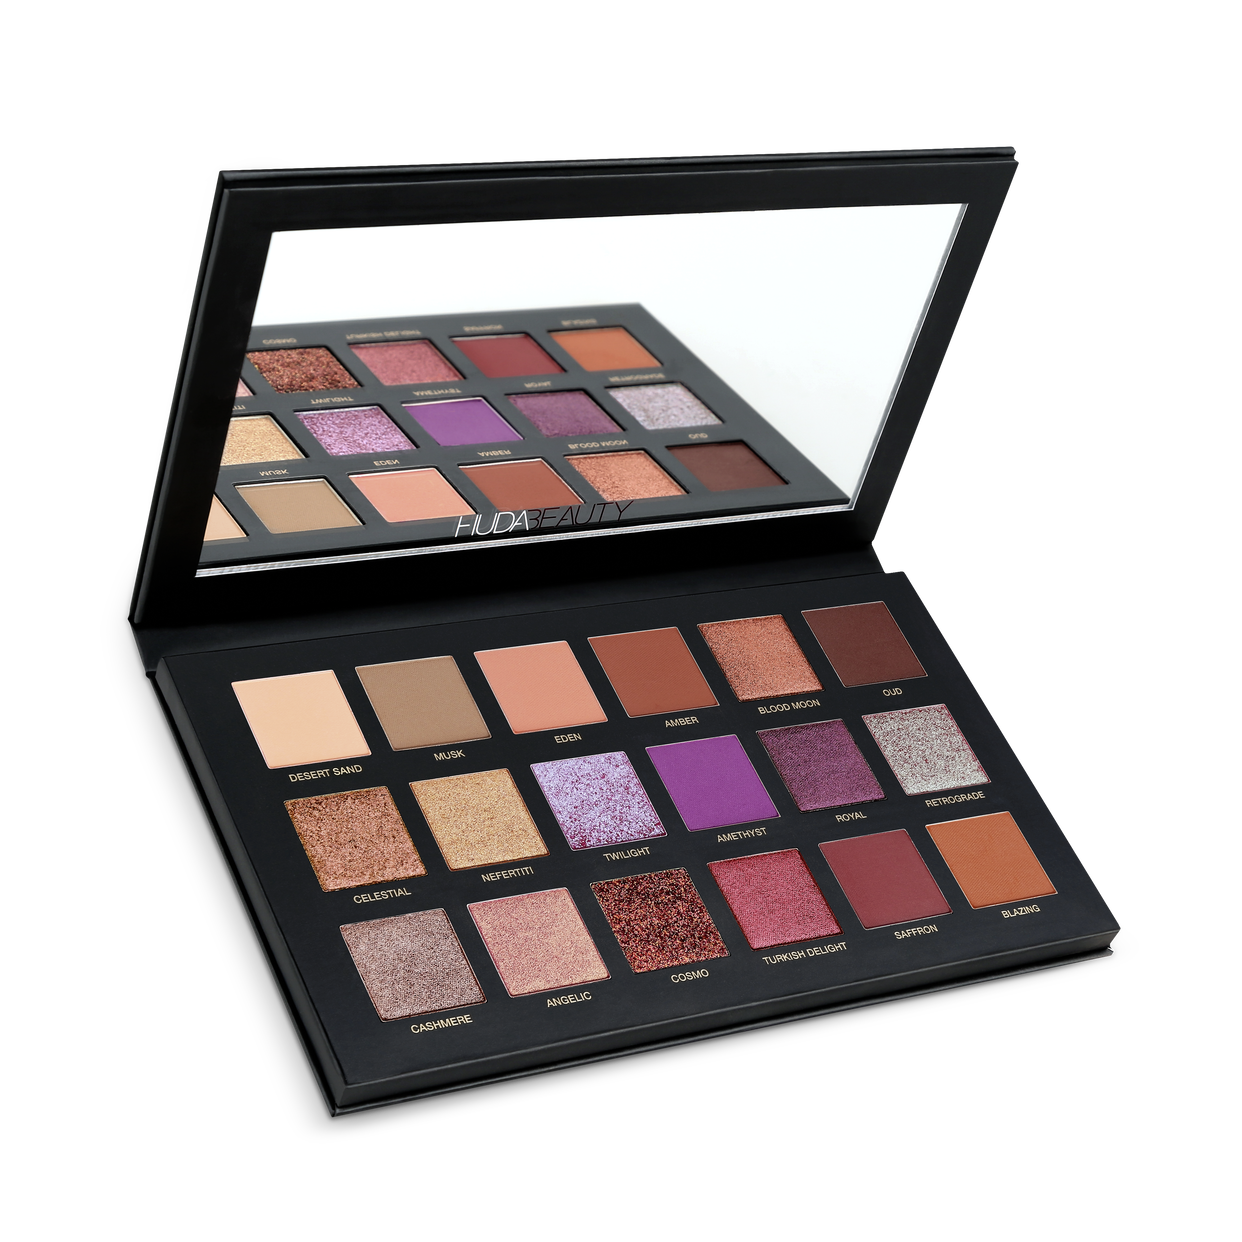 HUDA BEAUTY The New Nude Eyeshadow Palette New in Box